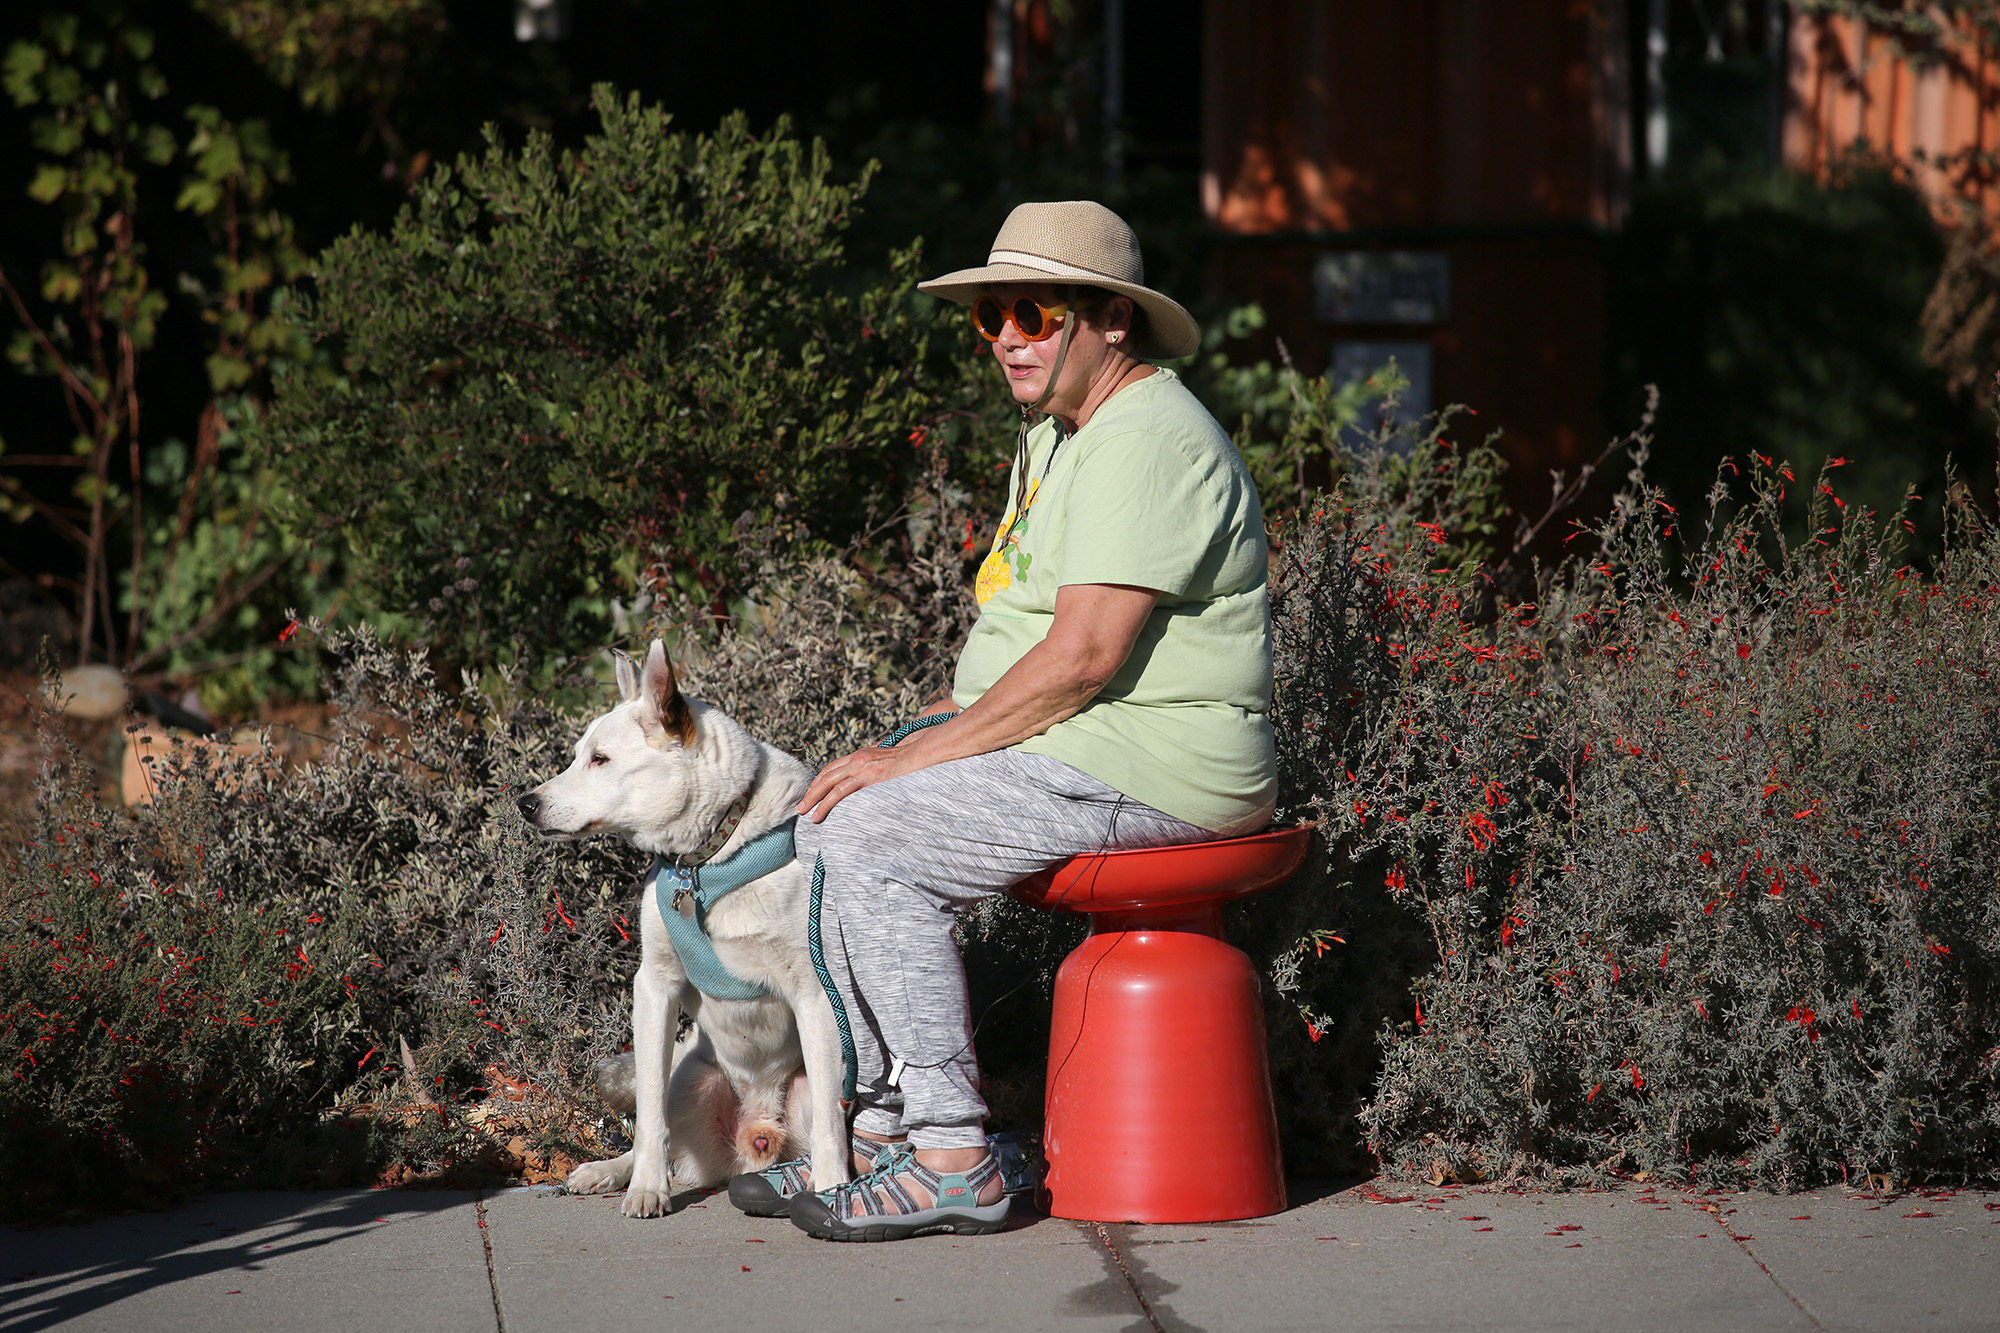 Former engineer Cynthia Typaldos sits with her dog, Bunny, outside their home on the 3000 block of Greer Road, where she knows almost everyone. Photo by Sammy Dallal.